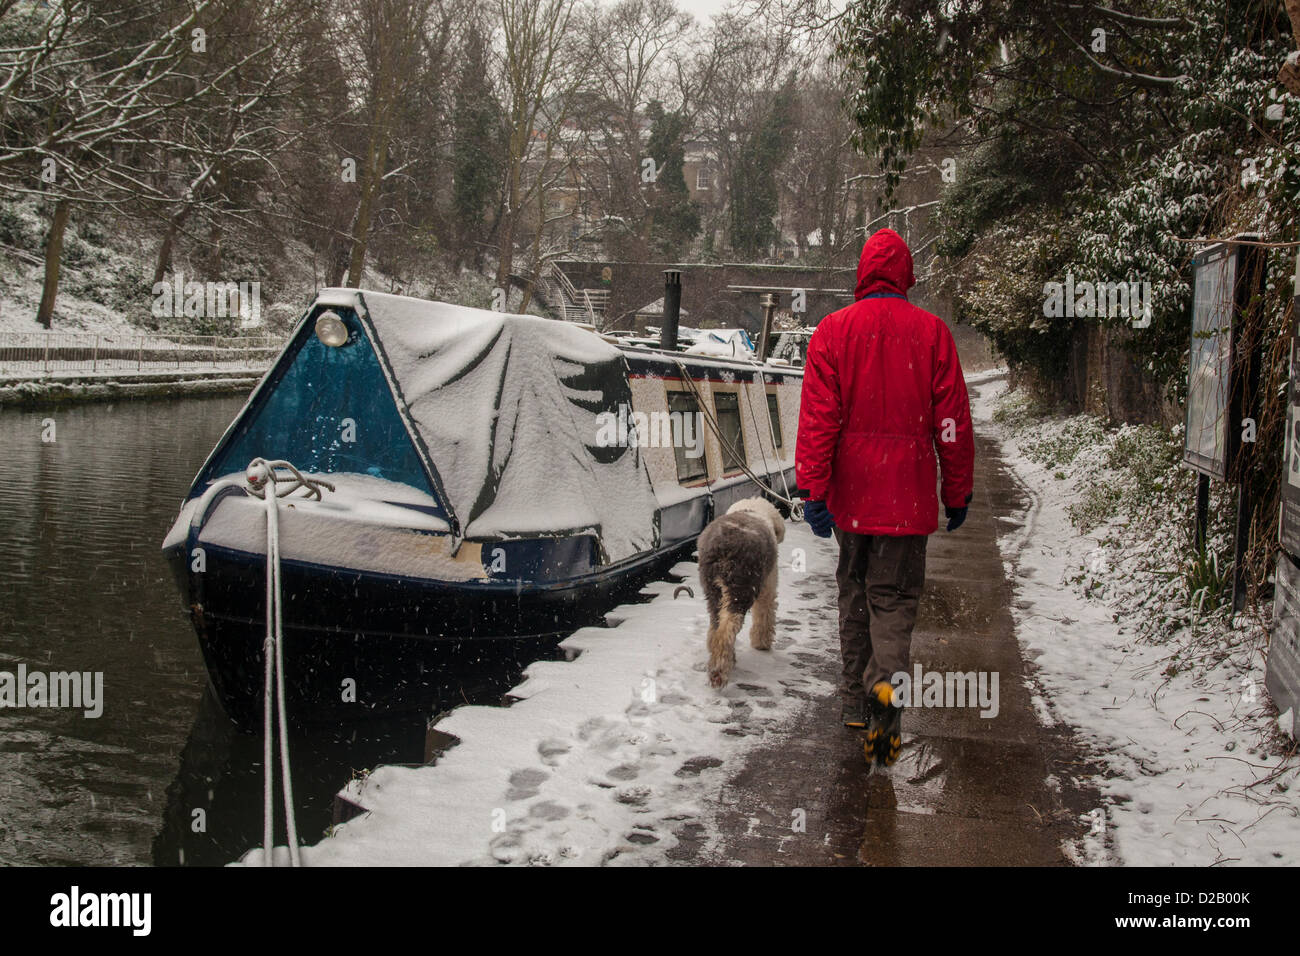 London, UK. 18th January 2013. Man strolls along the Regent's Canal, Central London, as snow falls across the - Stock Image